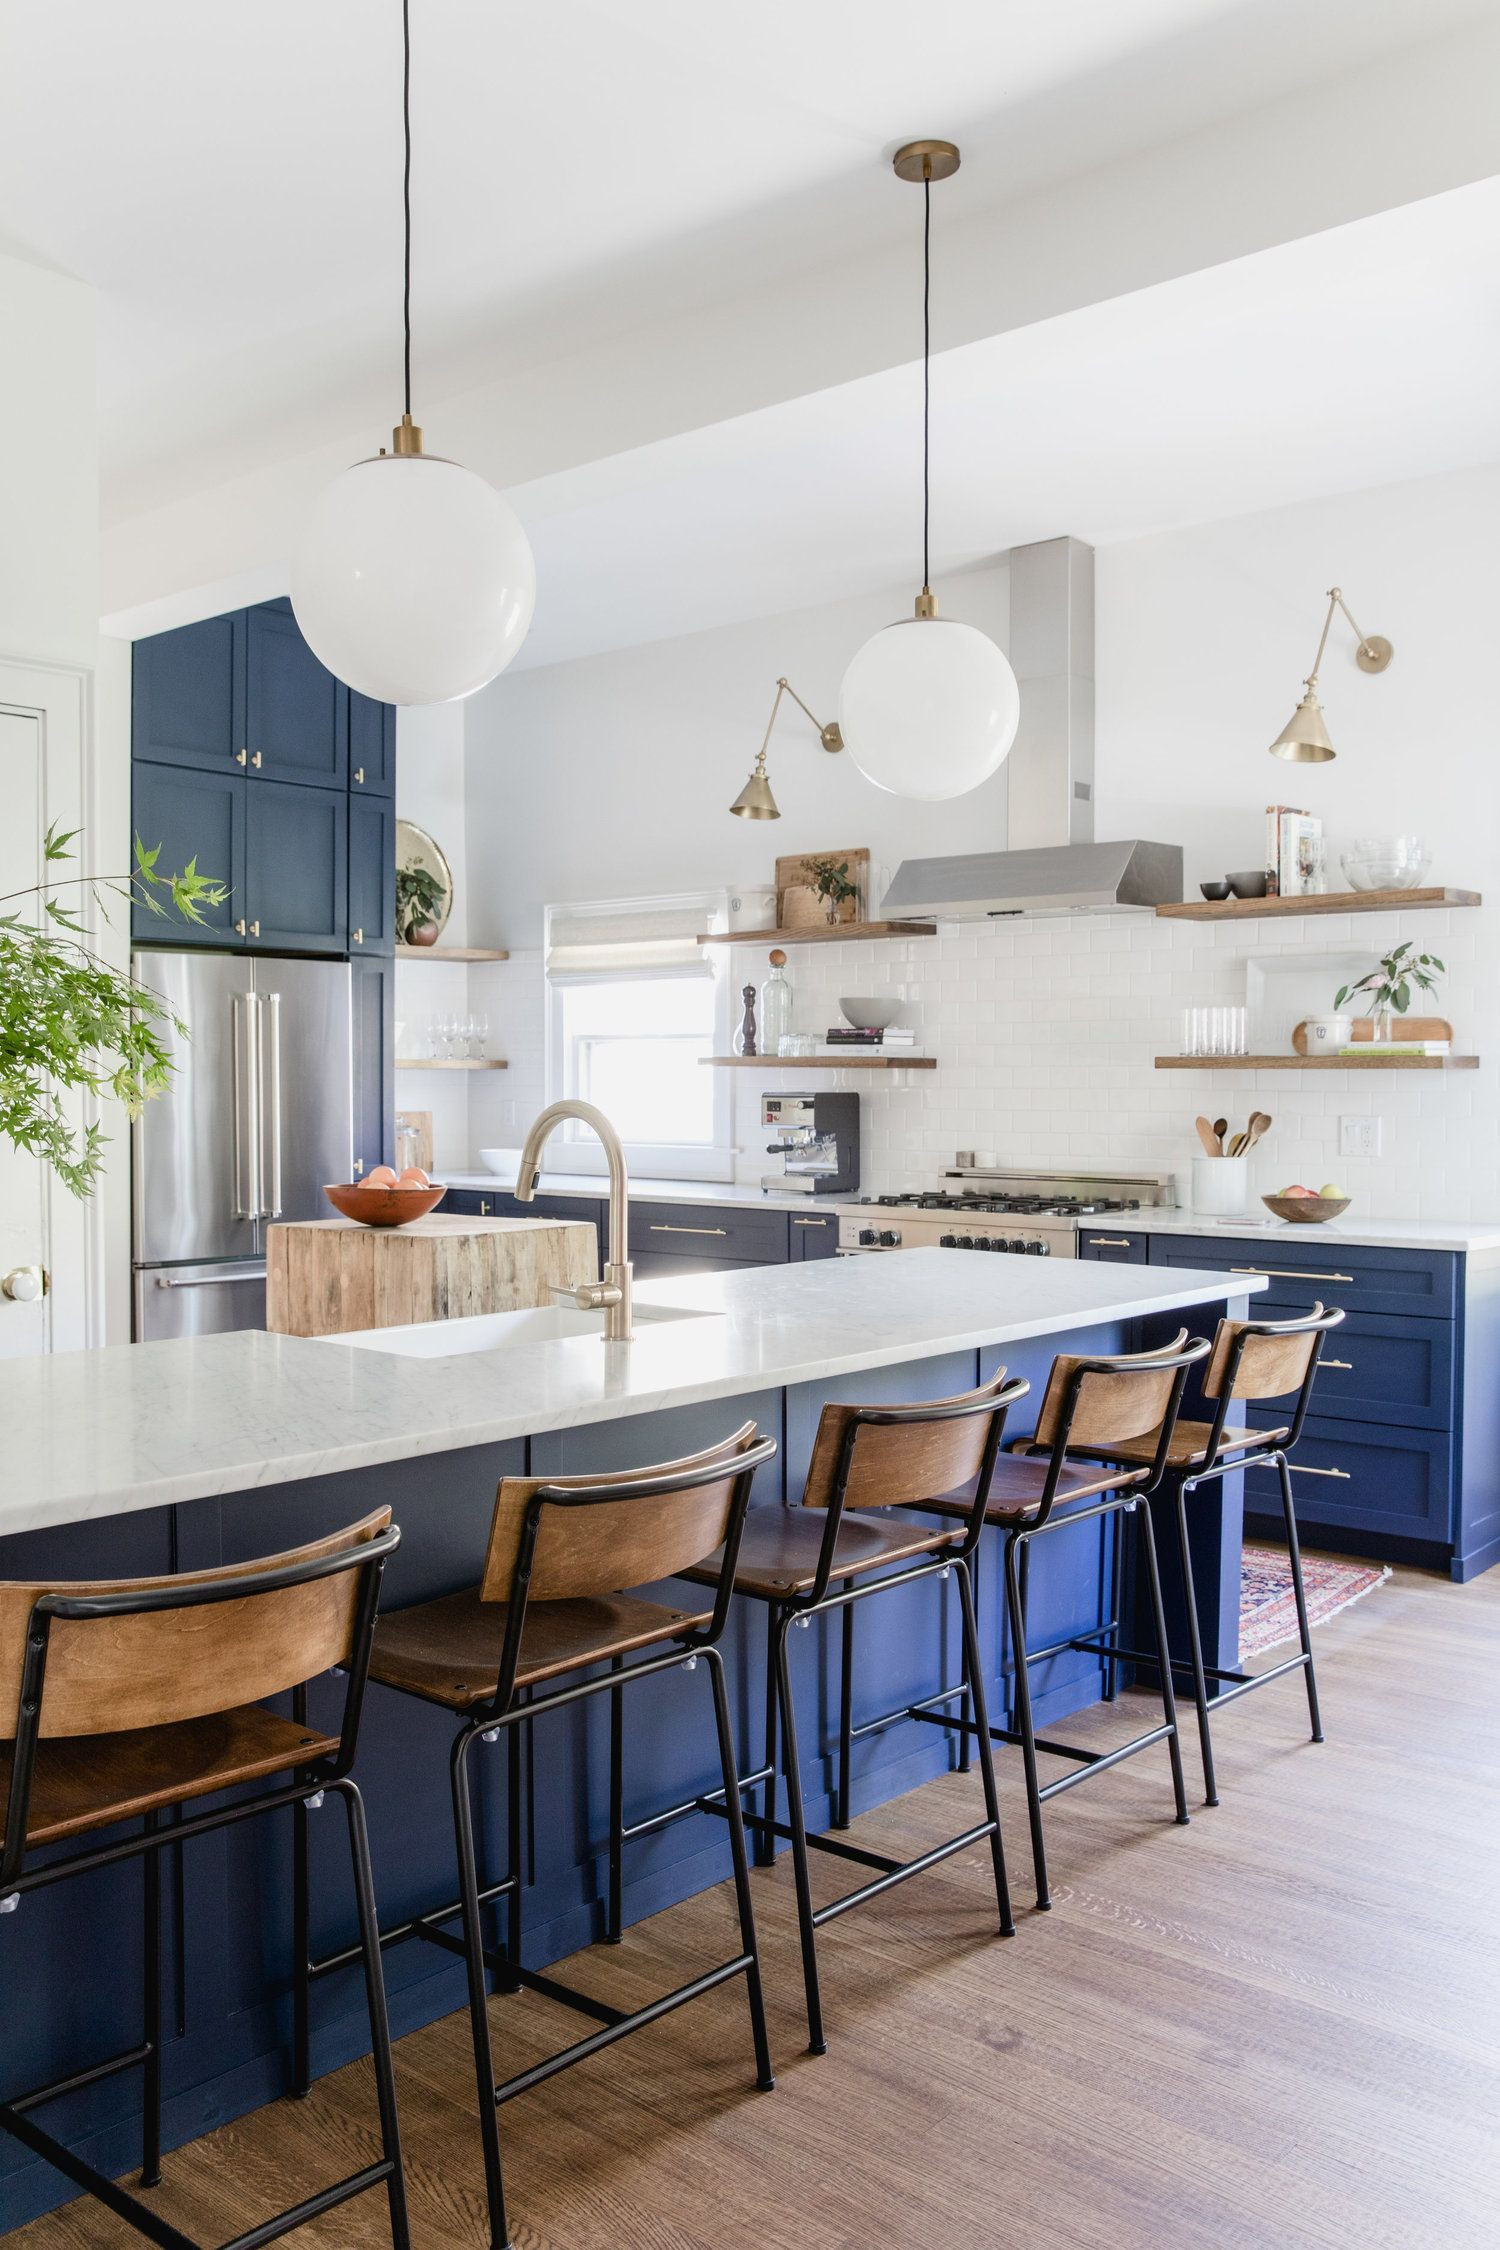 how to choose the right bar stools for your kitchen island or peninsula a farmhouse kitchen. Black Bedroom Furniture Sets. Home Design Ideas